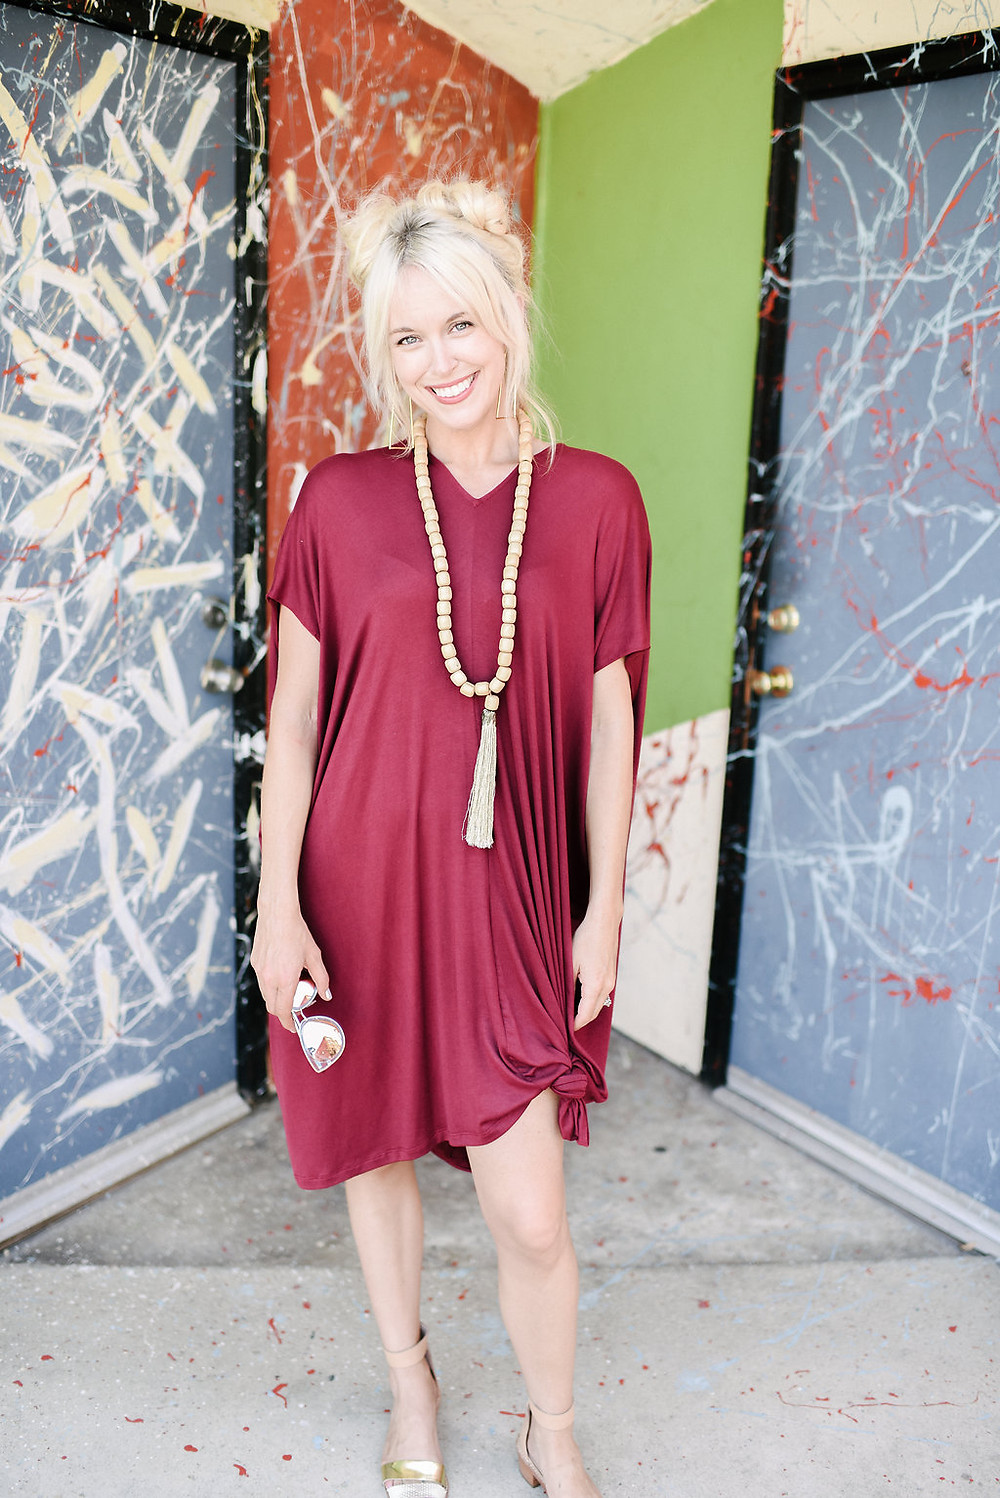 Brooke from The Tony Townie fashion/lifestyle blog wears burgundy tunic dress with wooden bead necklace